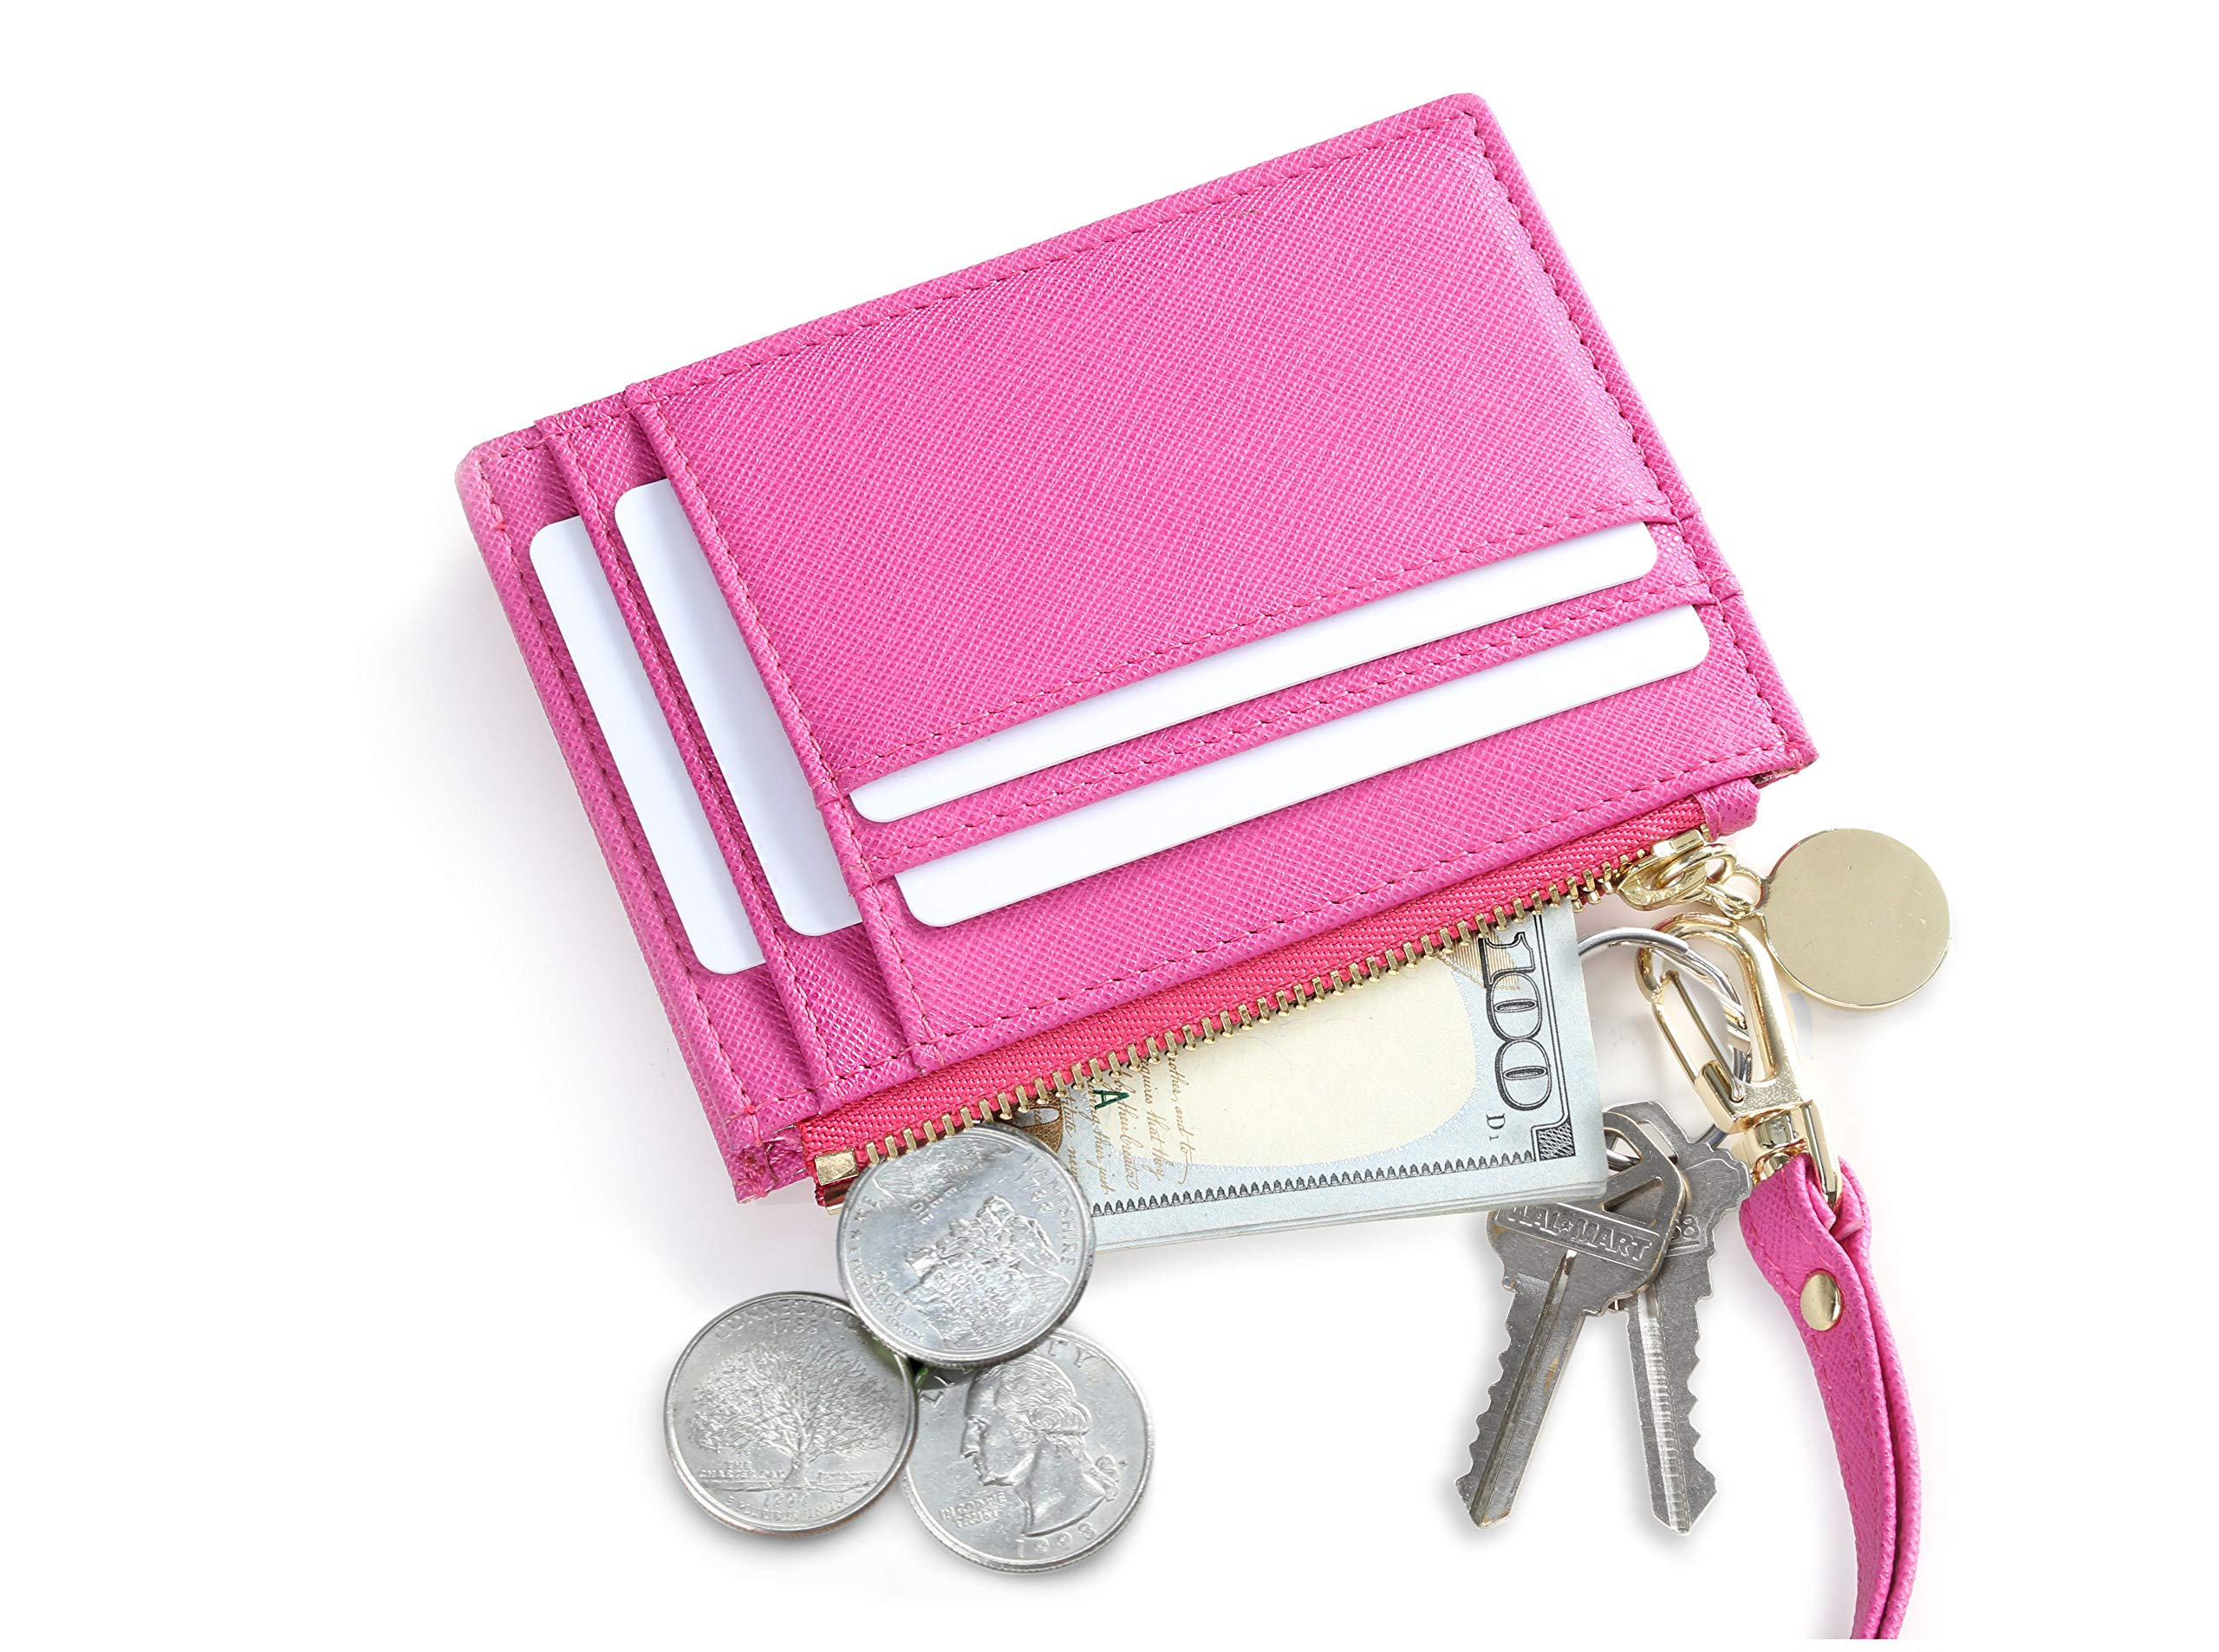 SERMAN BRANDS Slim Wristlet Card Case Holder Small RFID Blocking Wallet Change Purse for Women Keychain - Removable Wristlet Strap (Fuchsia CH)